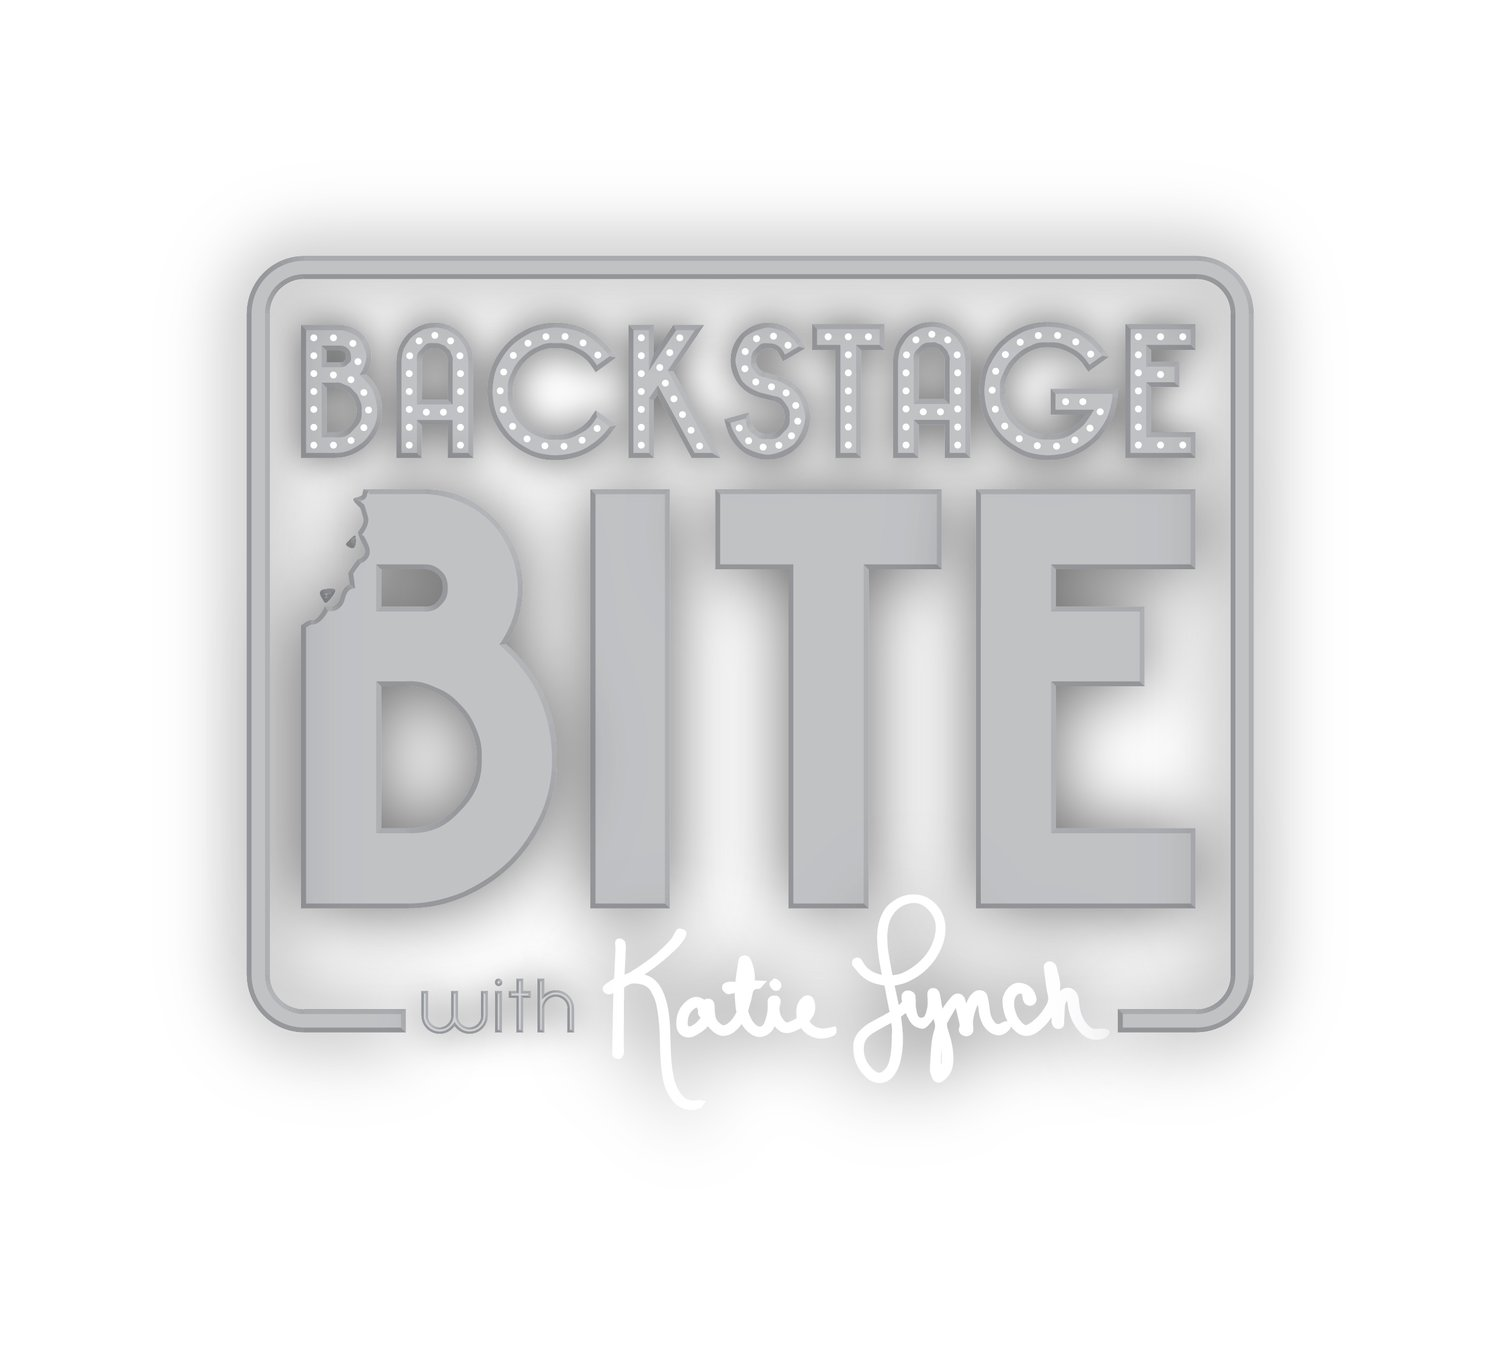 Backstage Bite